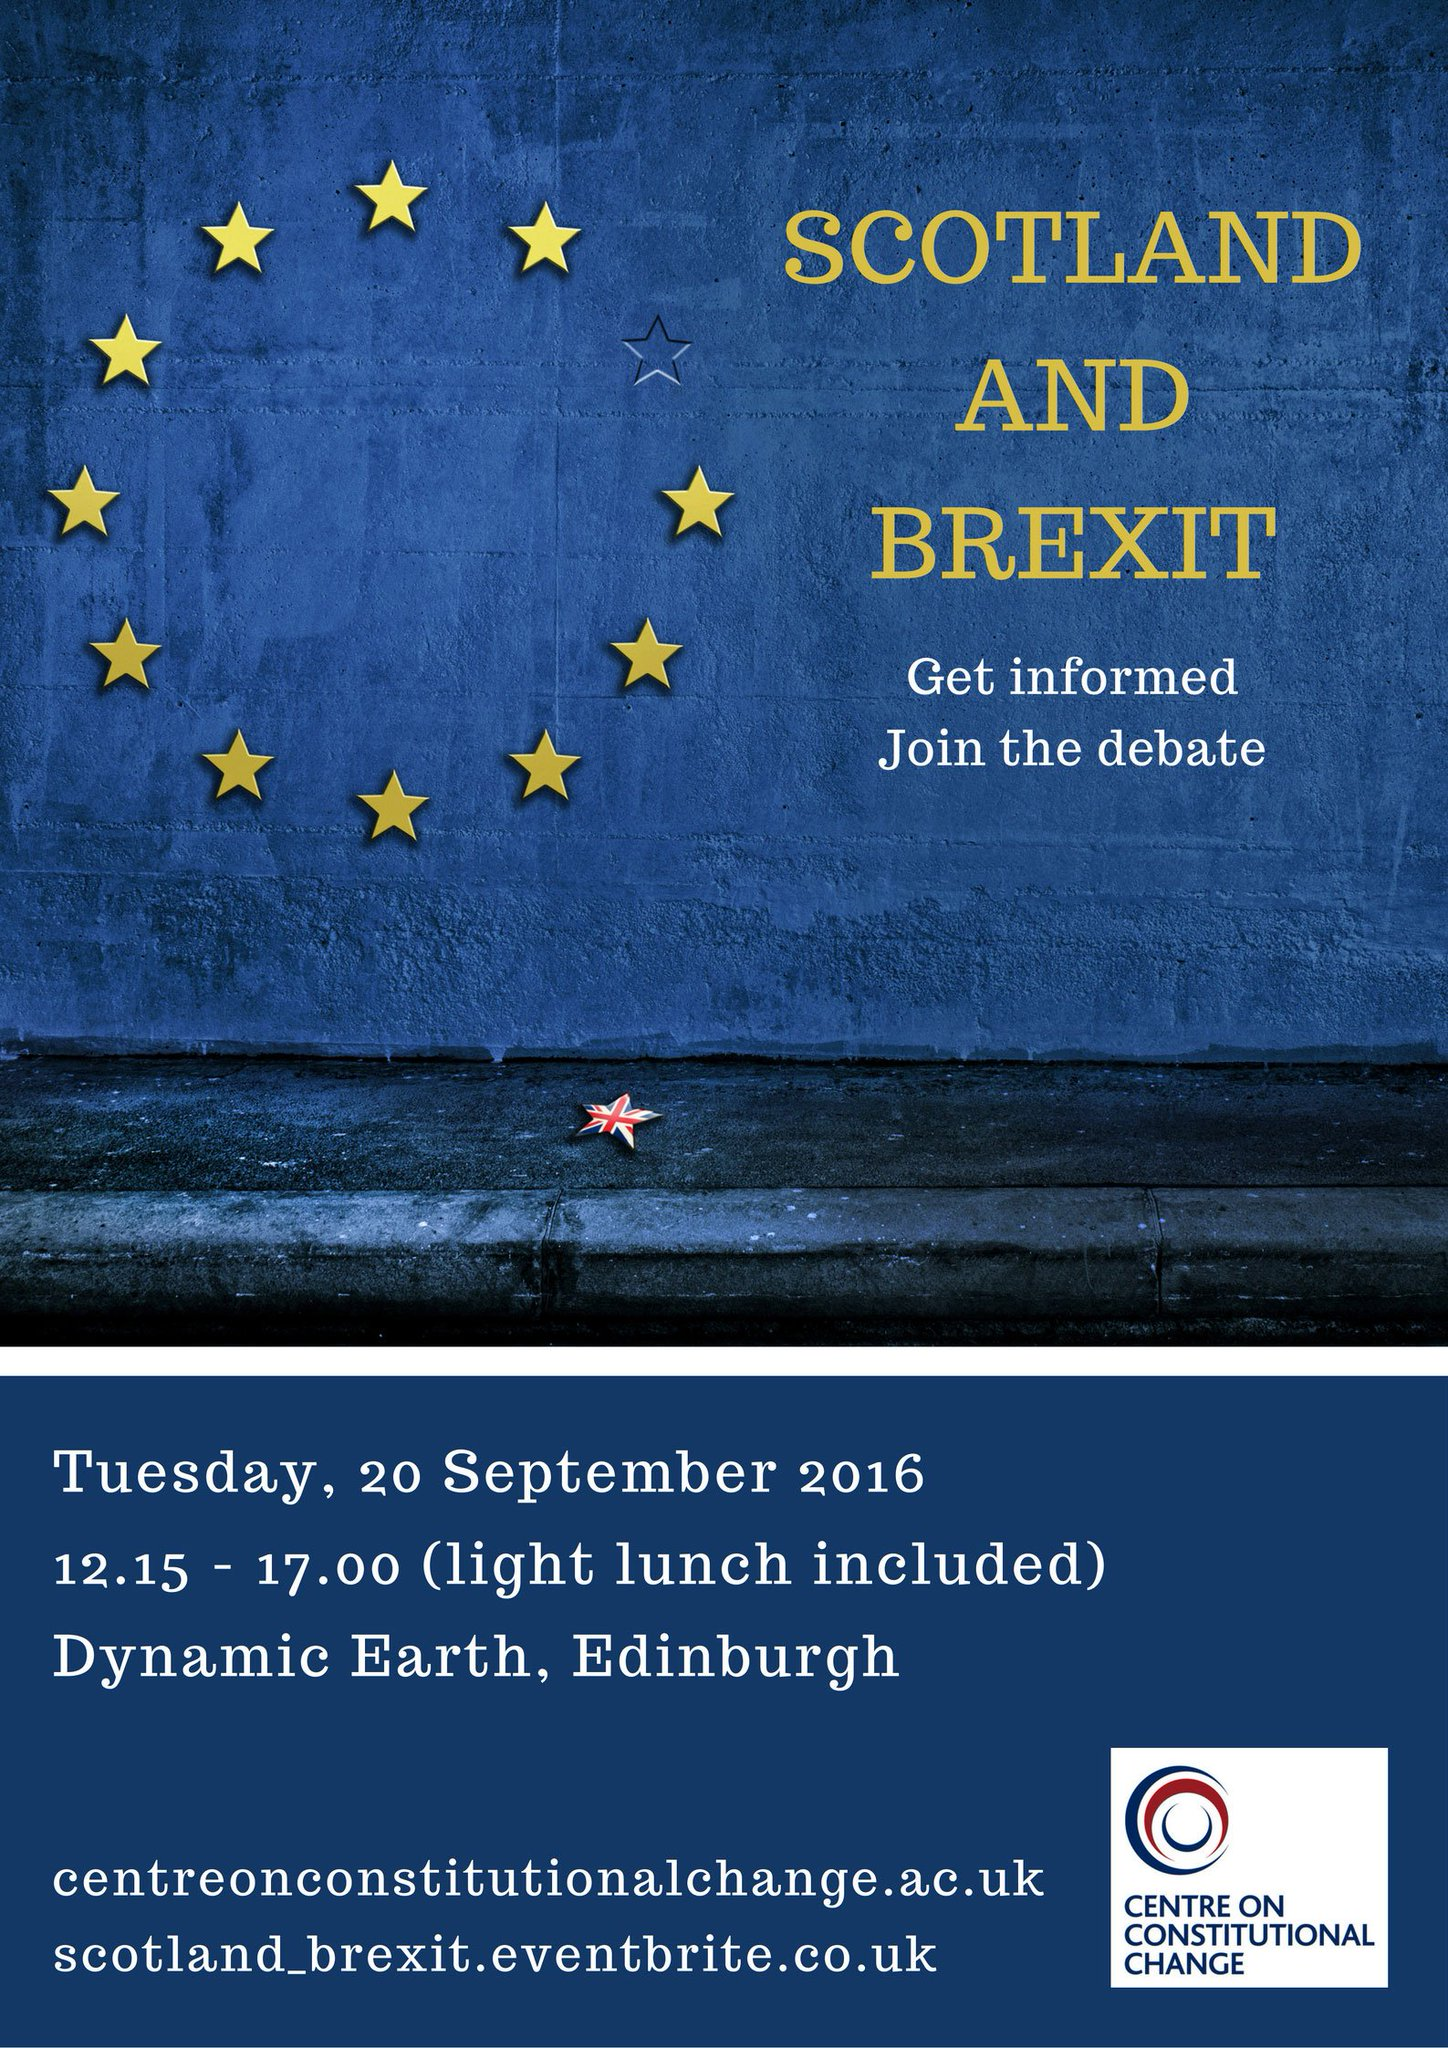 Our #ScotlandBrexit event will be live streamed next Tues., from 1300 - https://t.co/E3VvjOsClj @EdinburghPIR https://t.co/uEnrgjFR6j